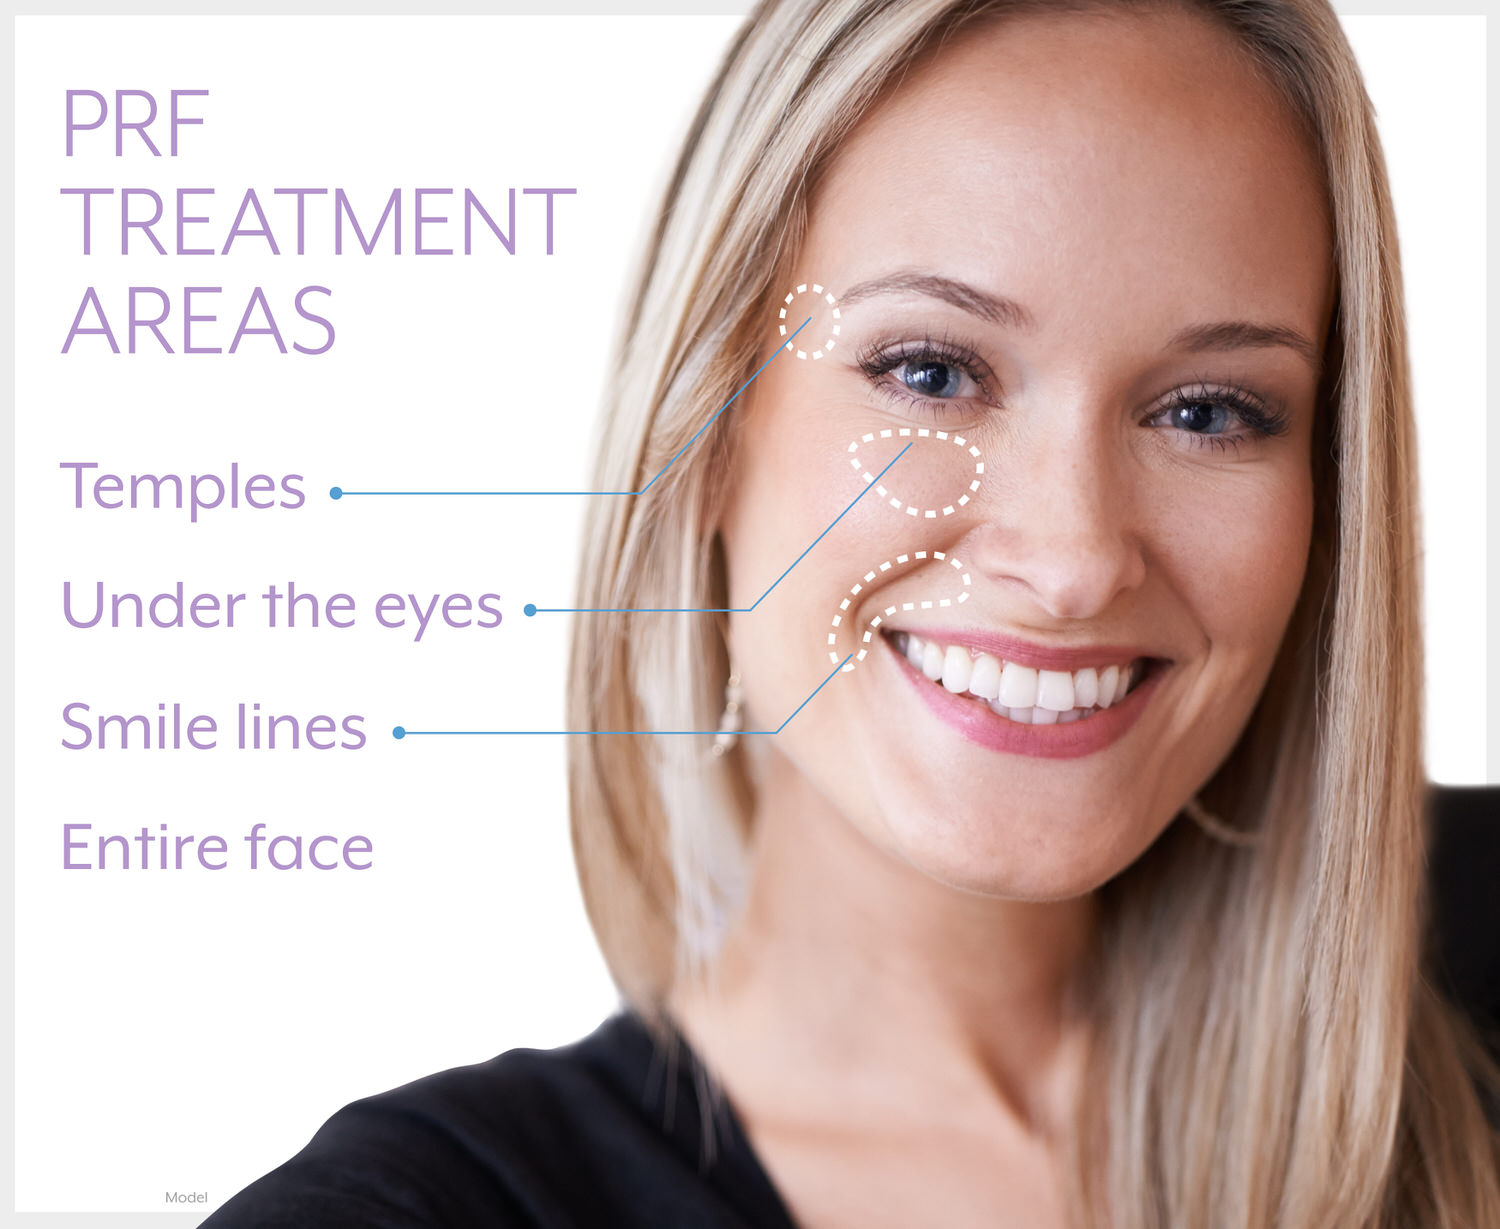 PRF treatment areas on the temples, under the eyes, smile lines, and entire face.